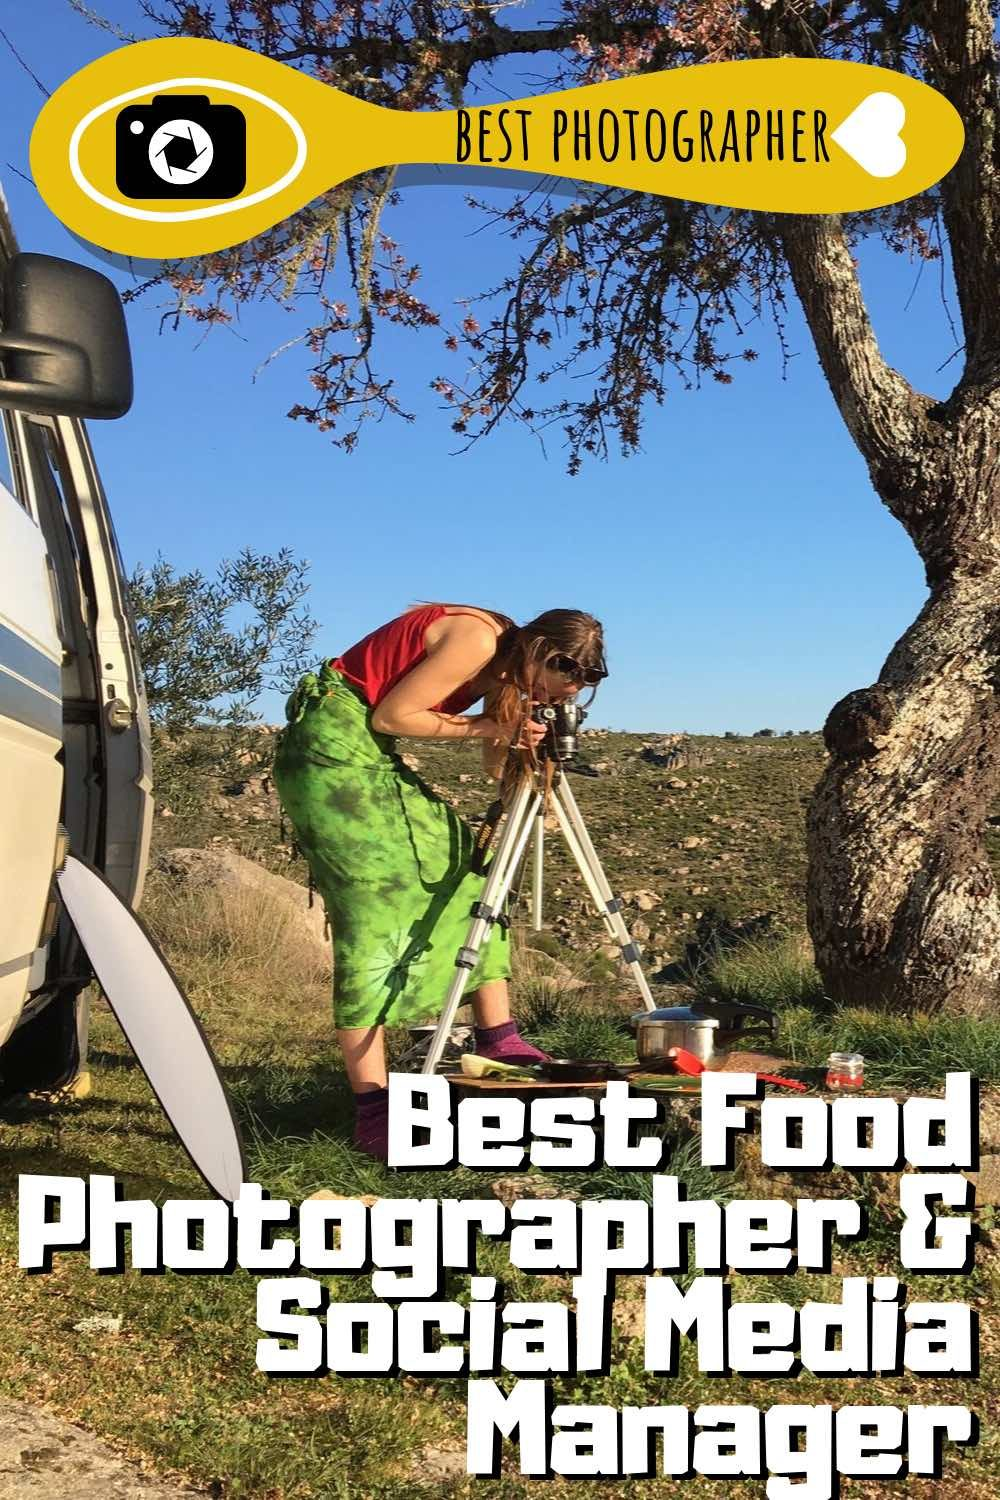 Sophie taking a picture of food nicely plated up on a wooden board outside the open campervan door.